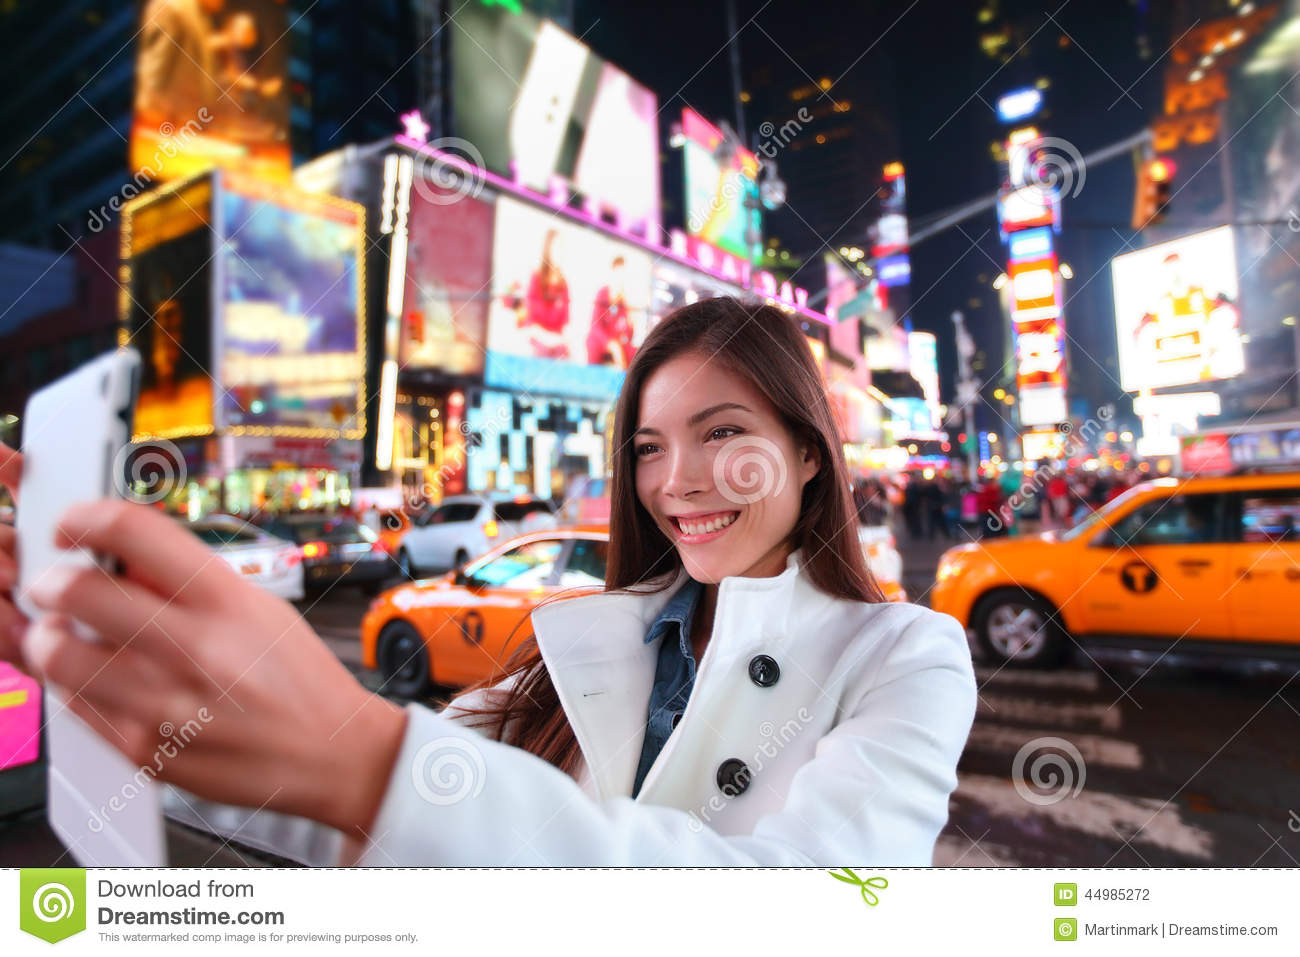 Selfie dating new york